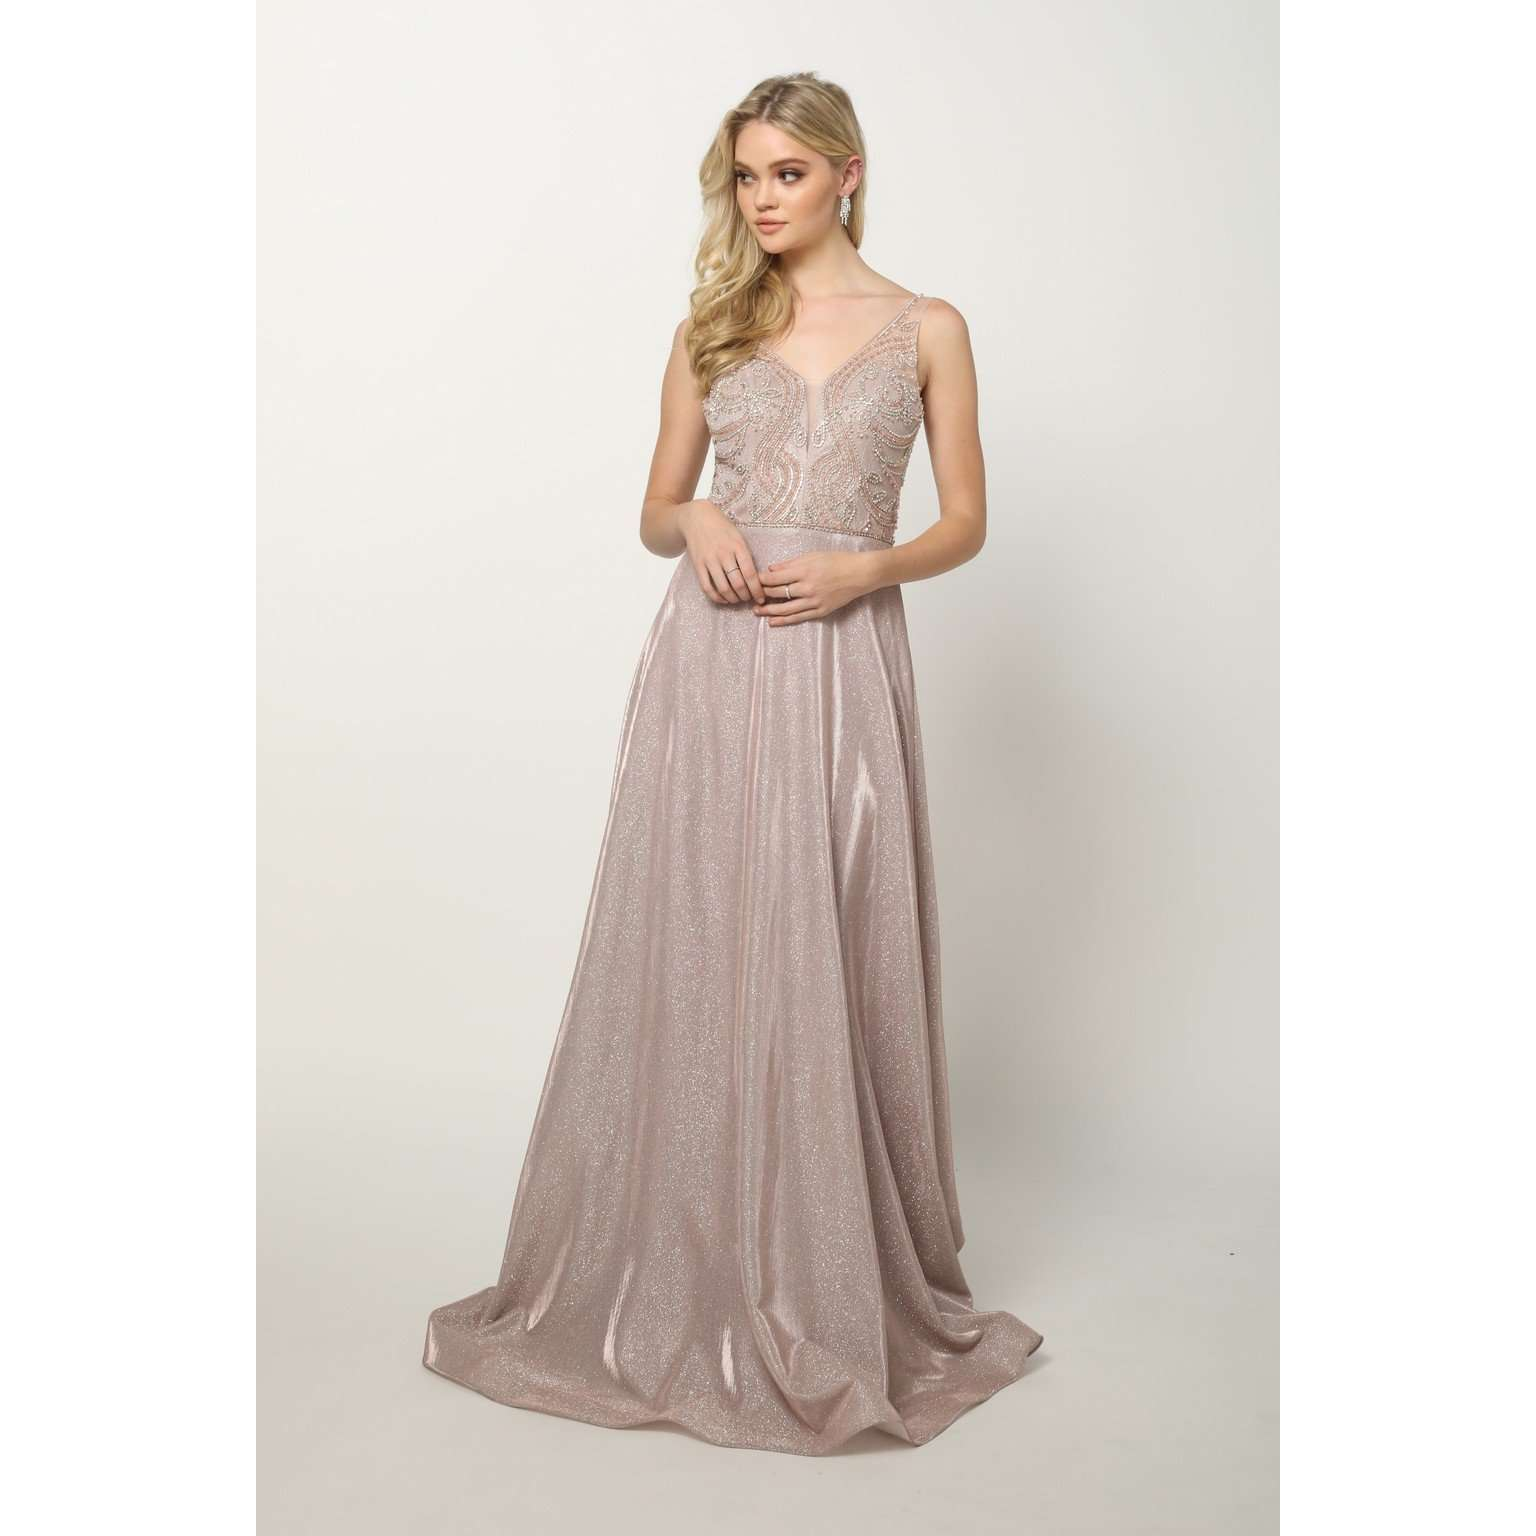 Embellished Bodice V-Neck Sleeveless Prom Dress 699 - Julietdresses